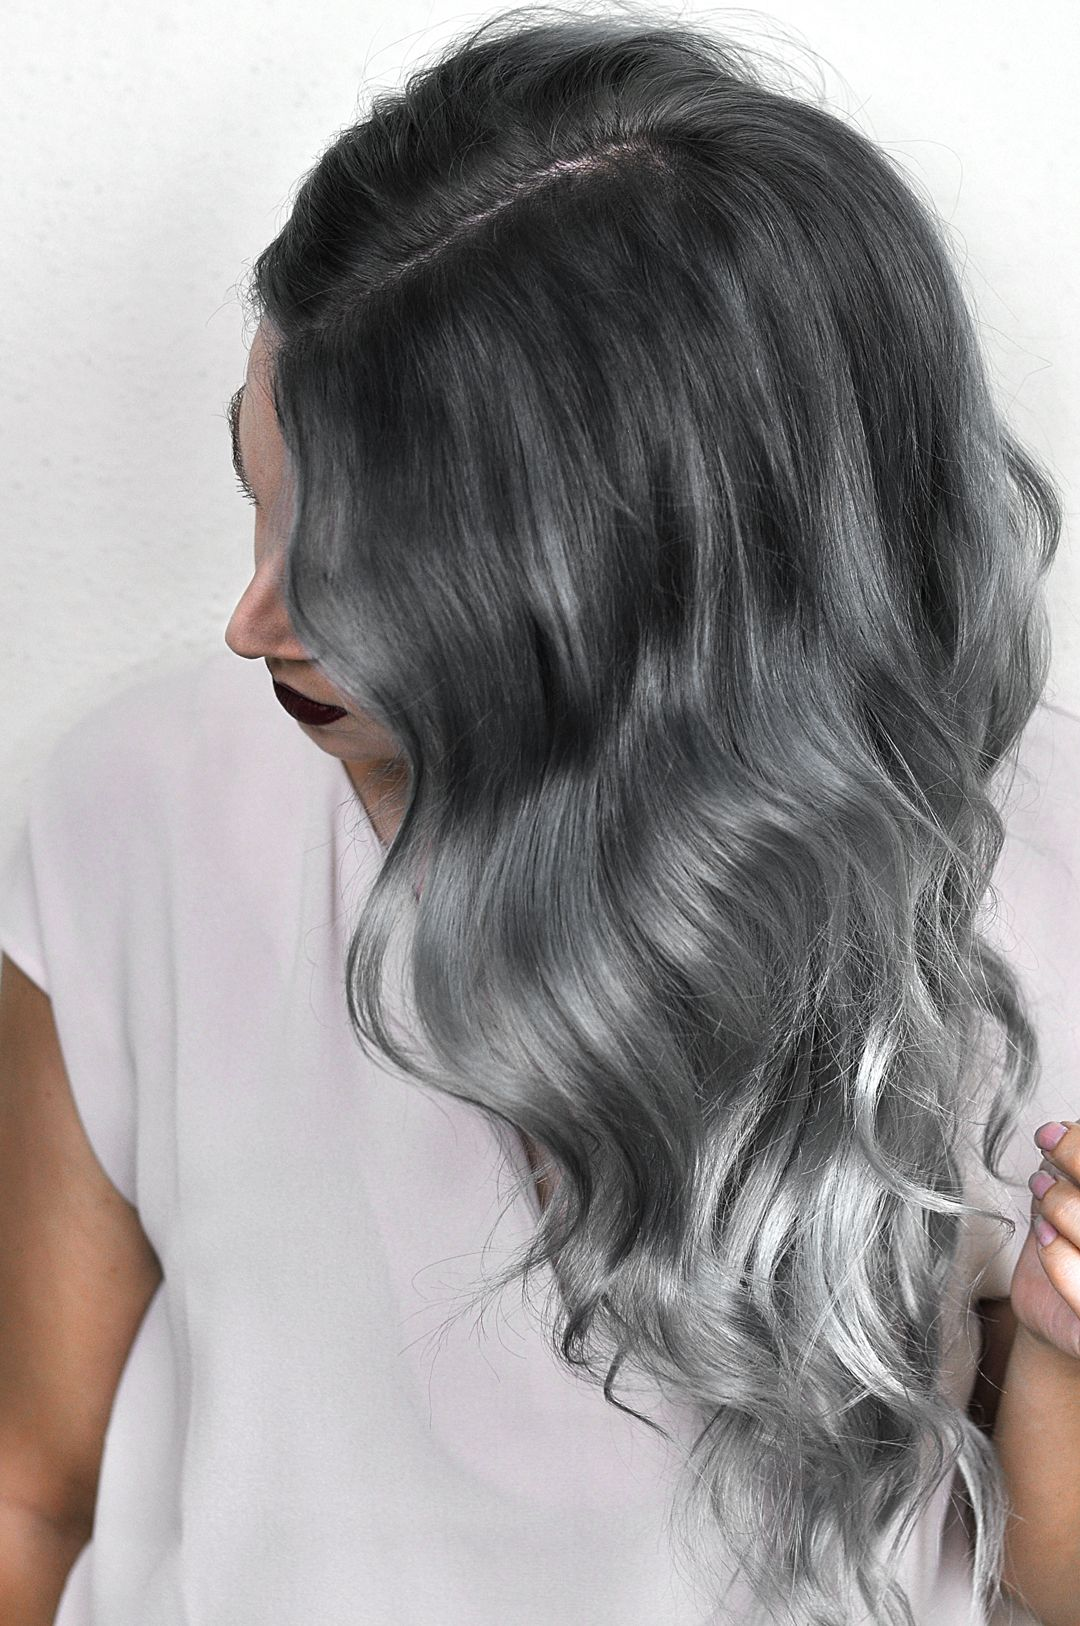 Silver Ombre Hair Dye Tutorial With Overtone Mayalamode Silver Ombre Hair Overtone Hair Color Hair Dye Tutorial